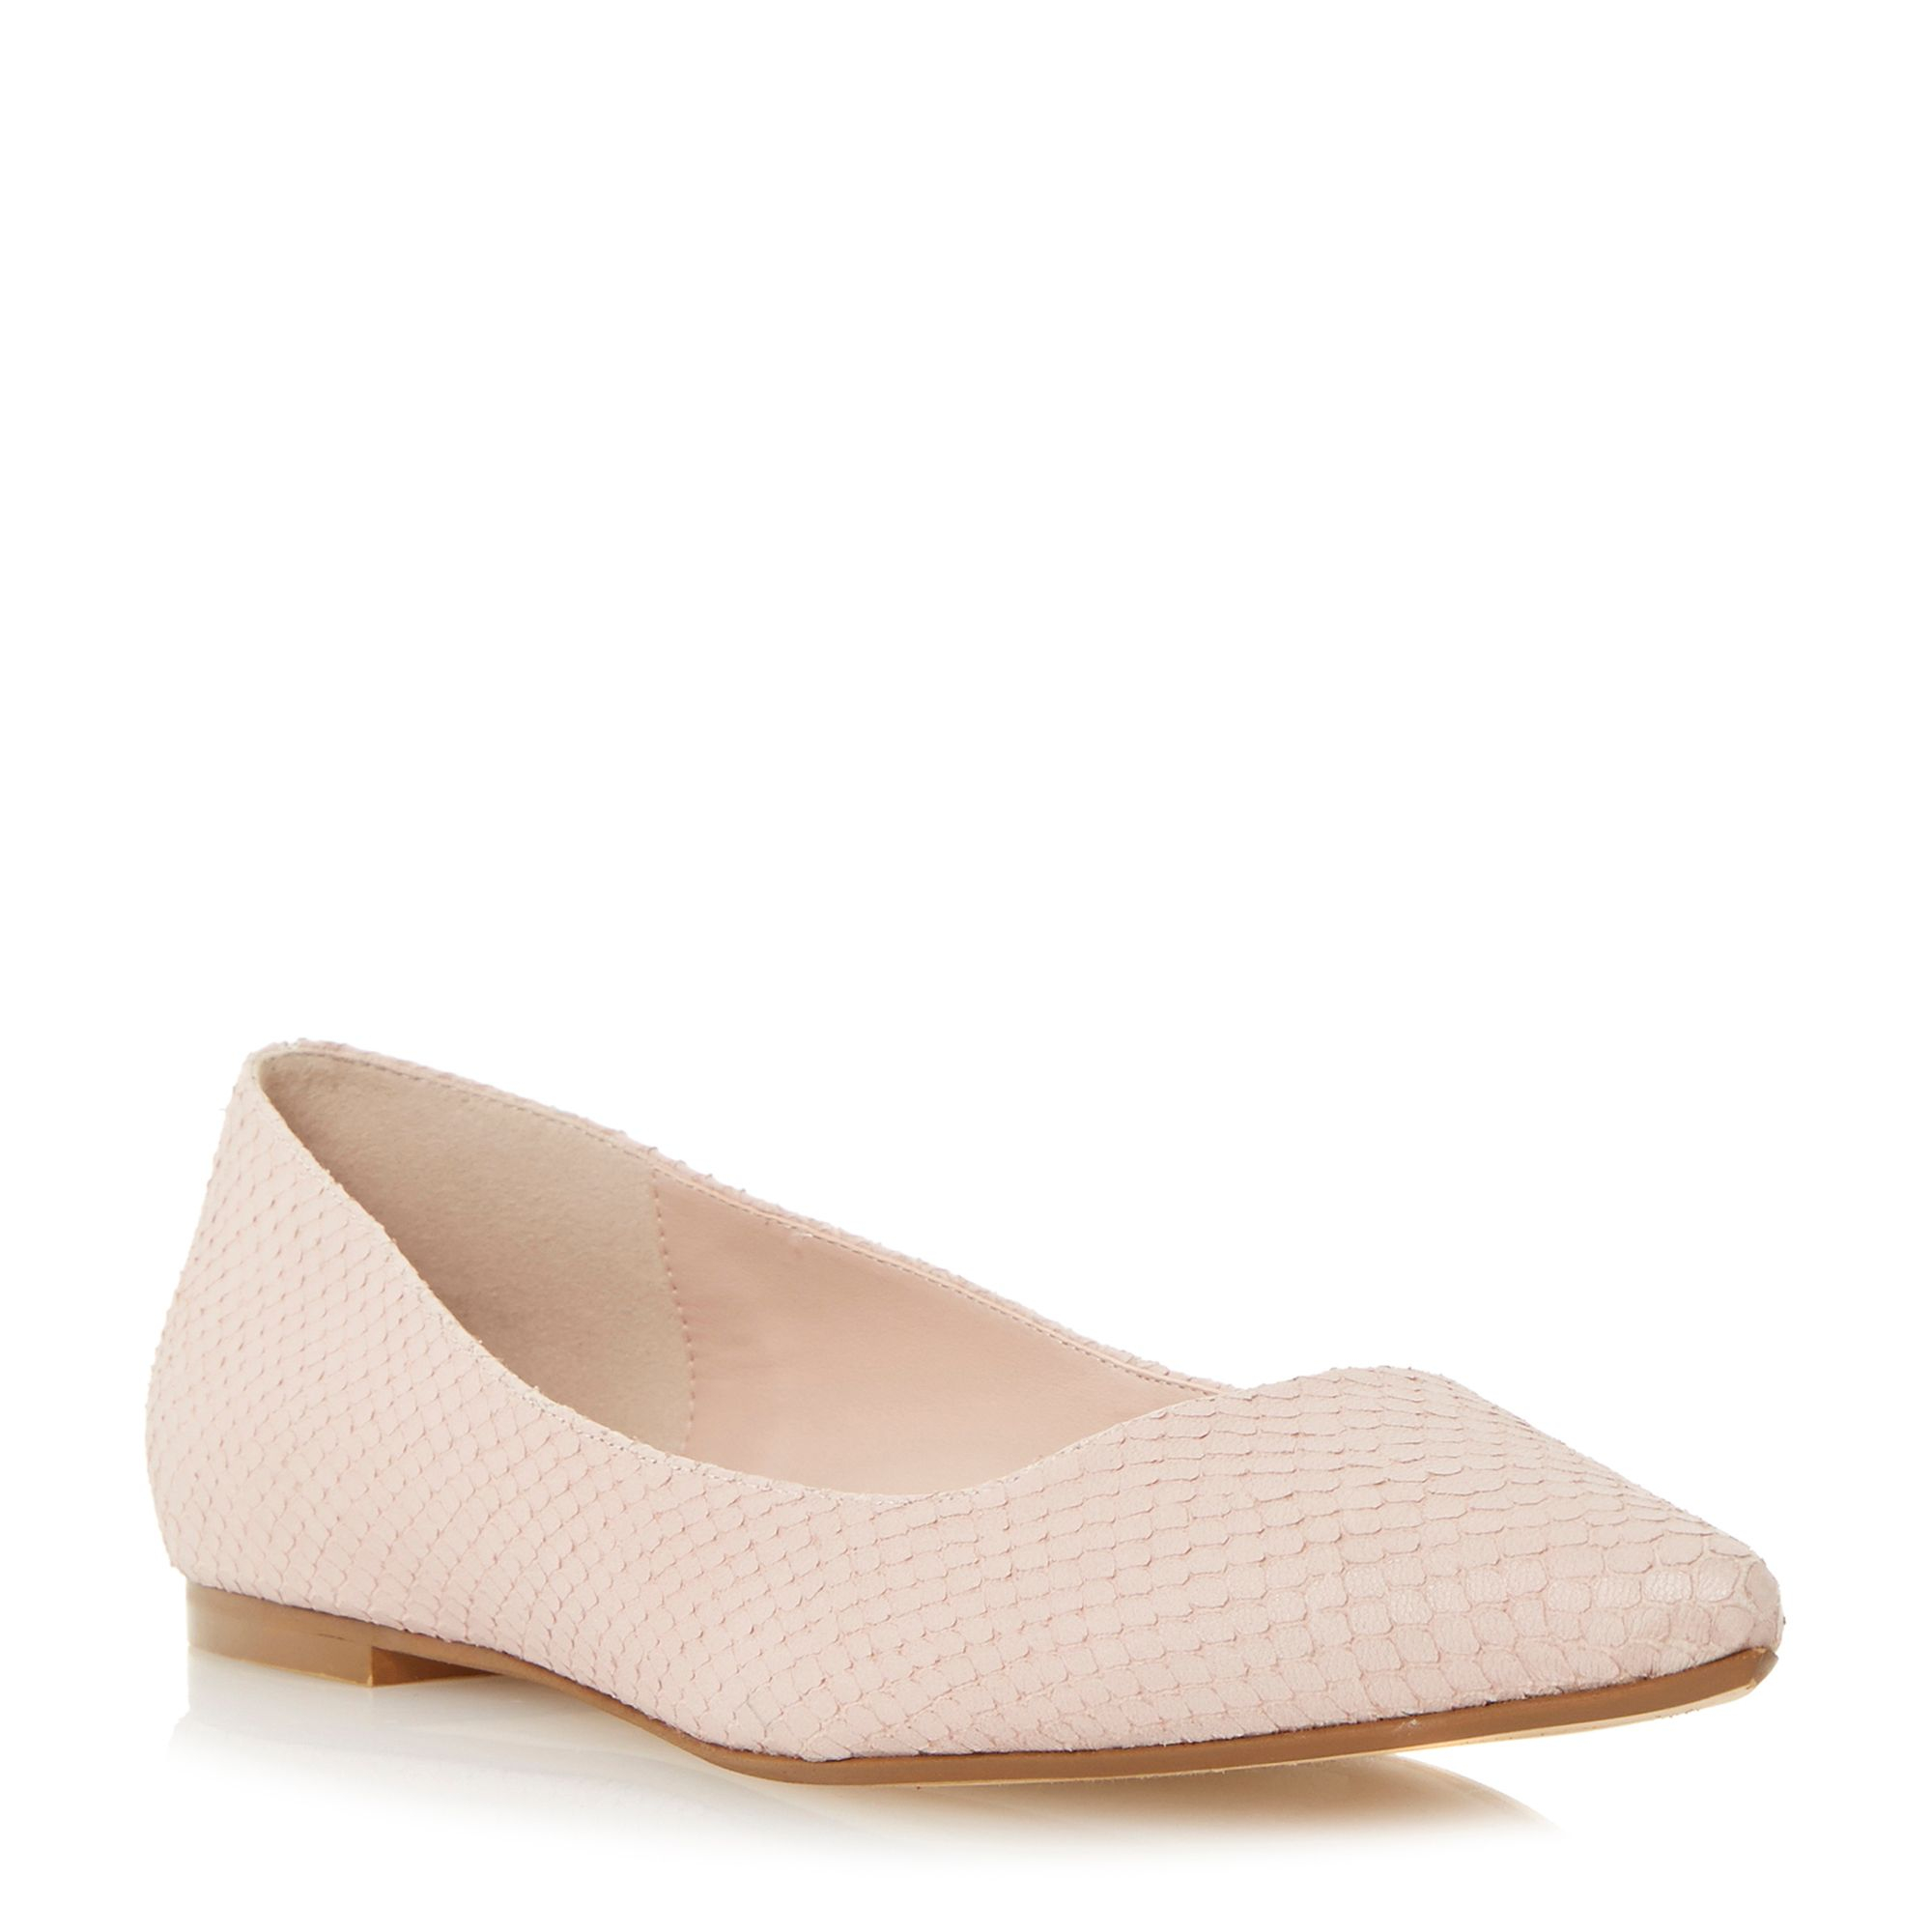 Dune Amarie Flat Pointed Toe Court Shoes In Pink   Lyst